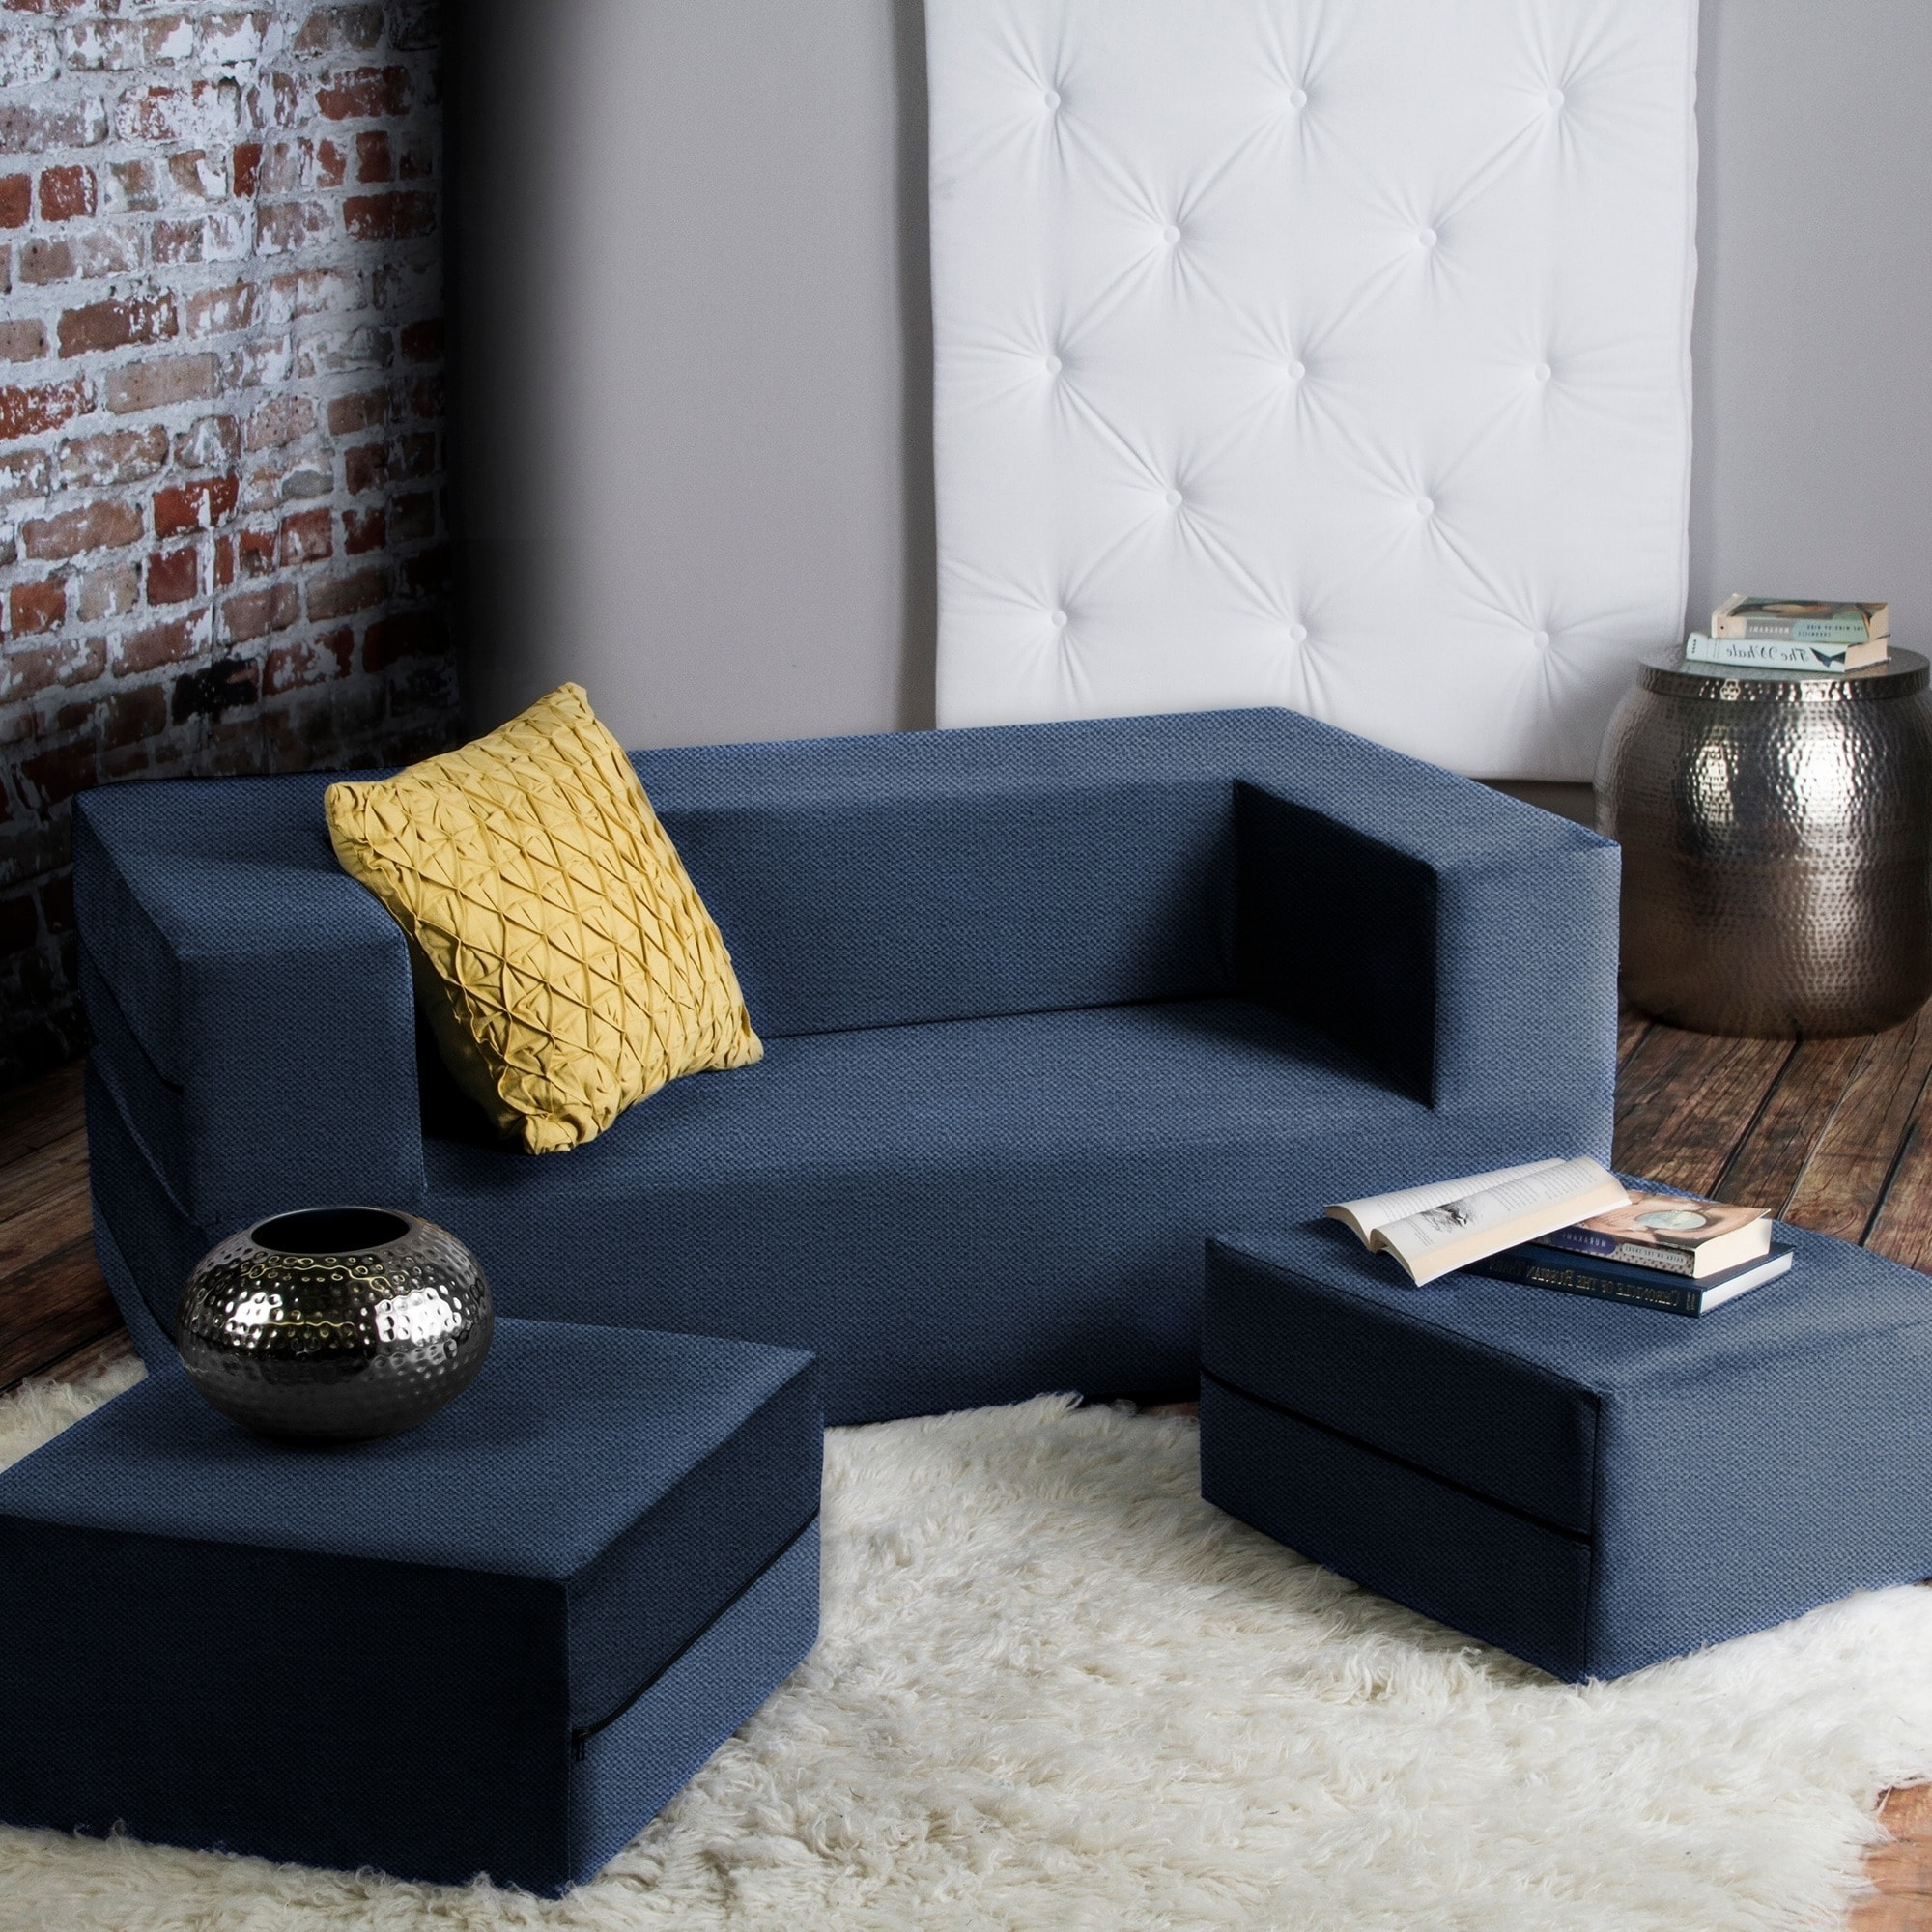 Current Jaxx Zipline Convertible Sleeper Loveseat And Ottomans/ Queen Size With Regard To Loveseats With Ottoman (View 13 of 20)